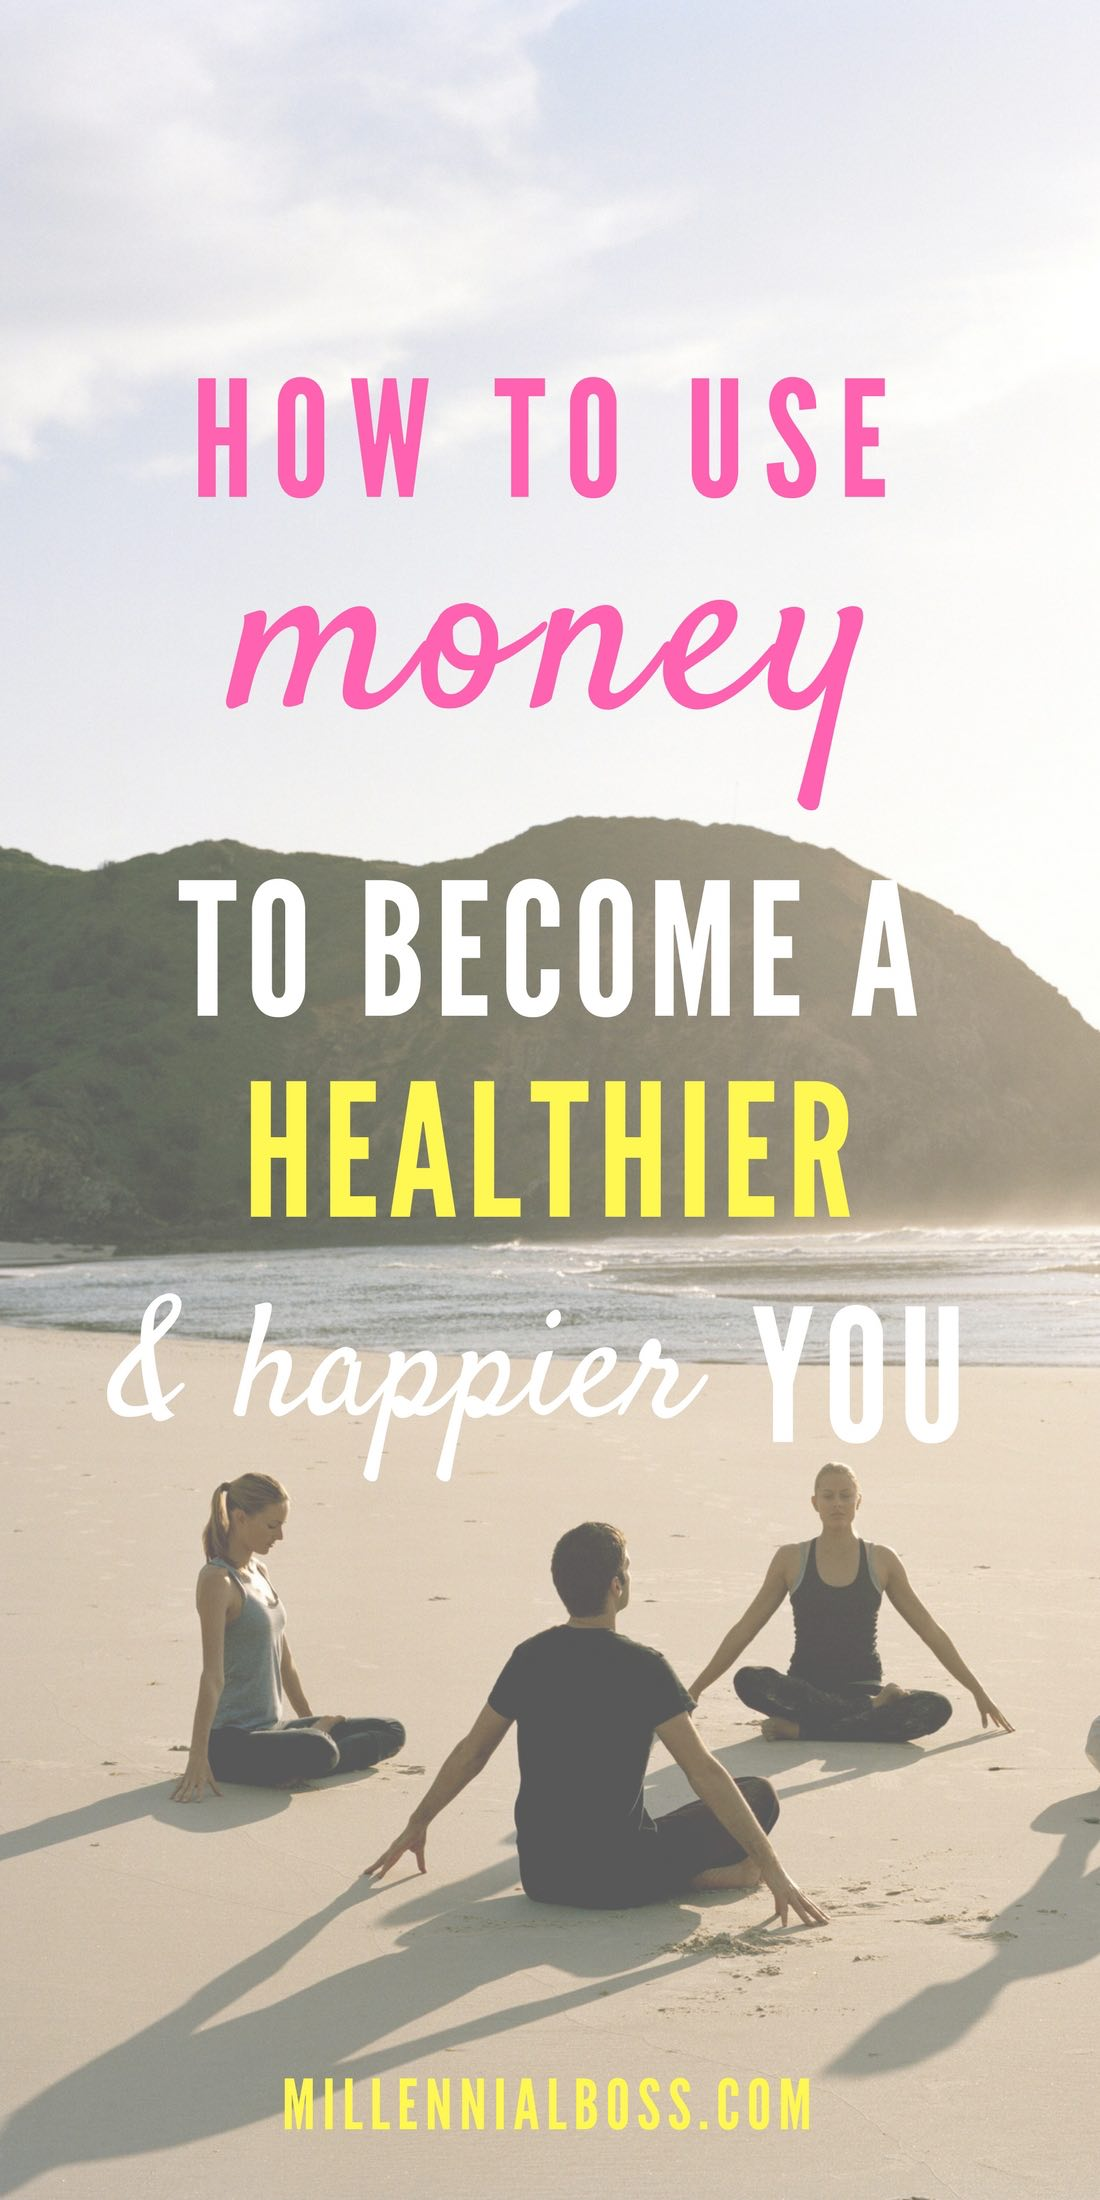 Love this advice! I am guilty of trying to save a few bucks and not thinking about the outcome on my health. Thank you!